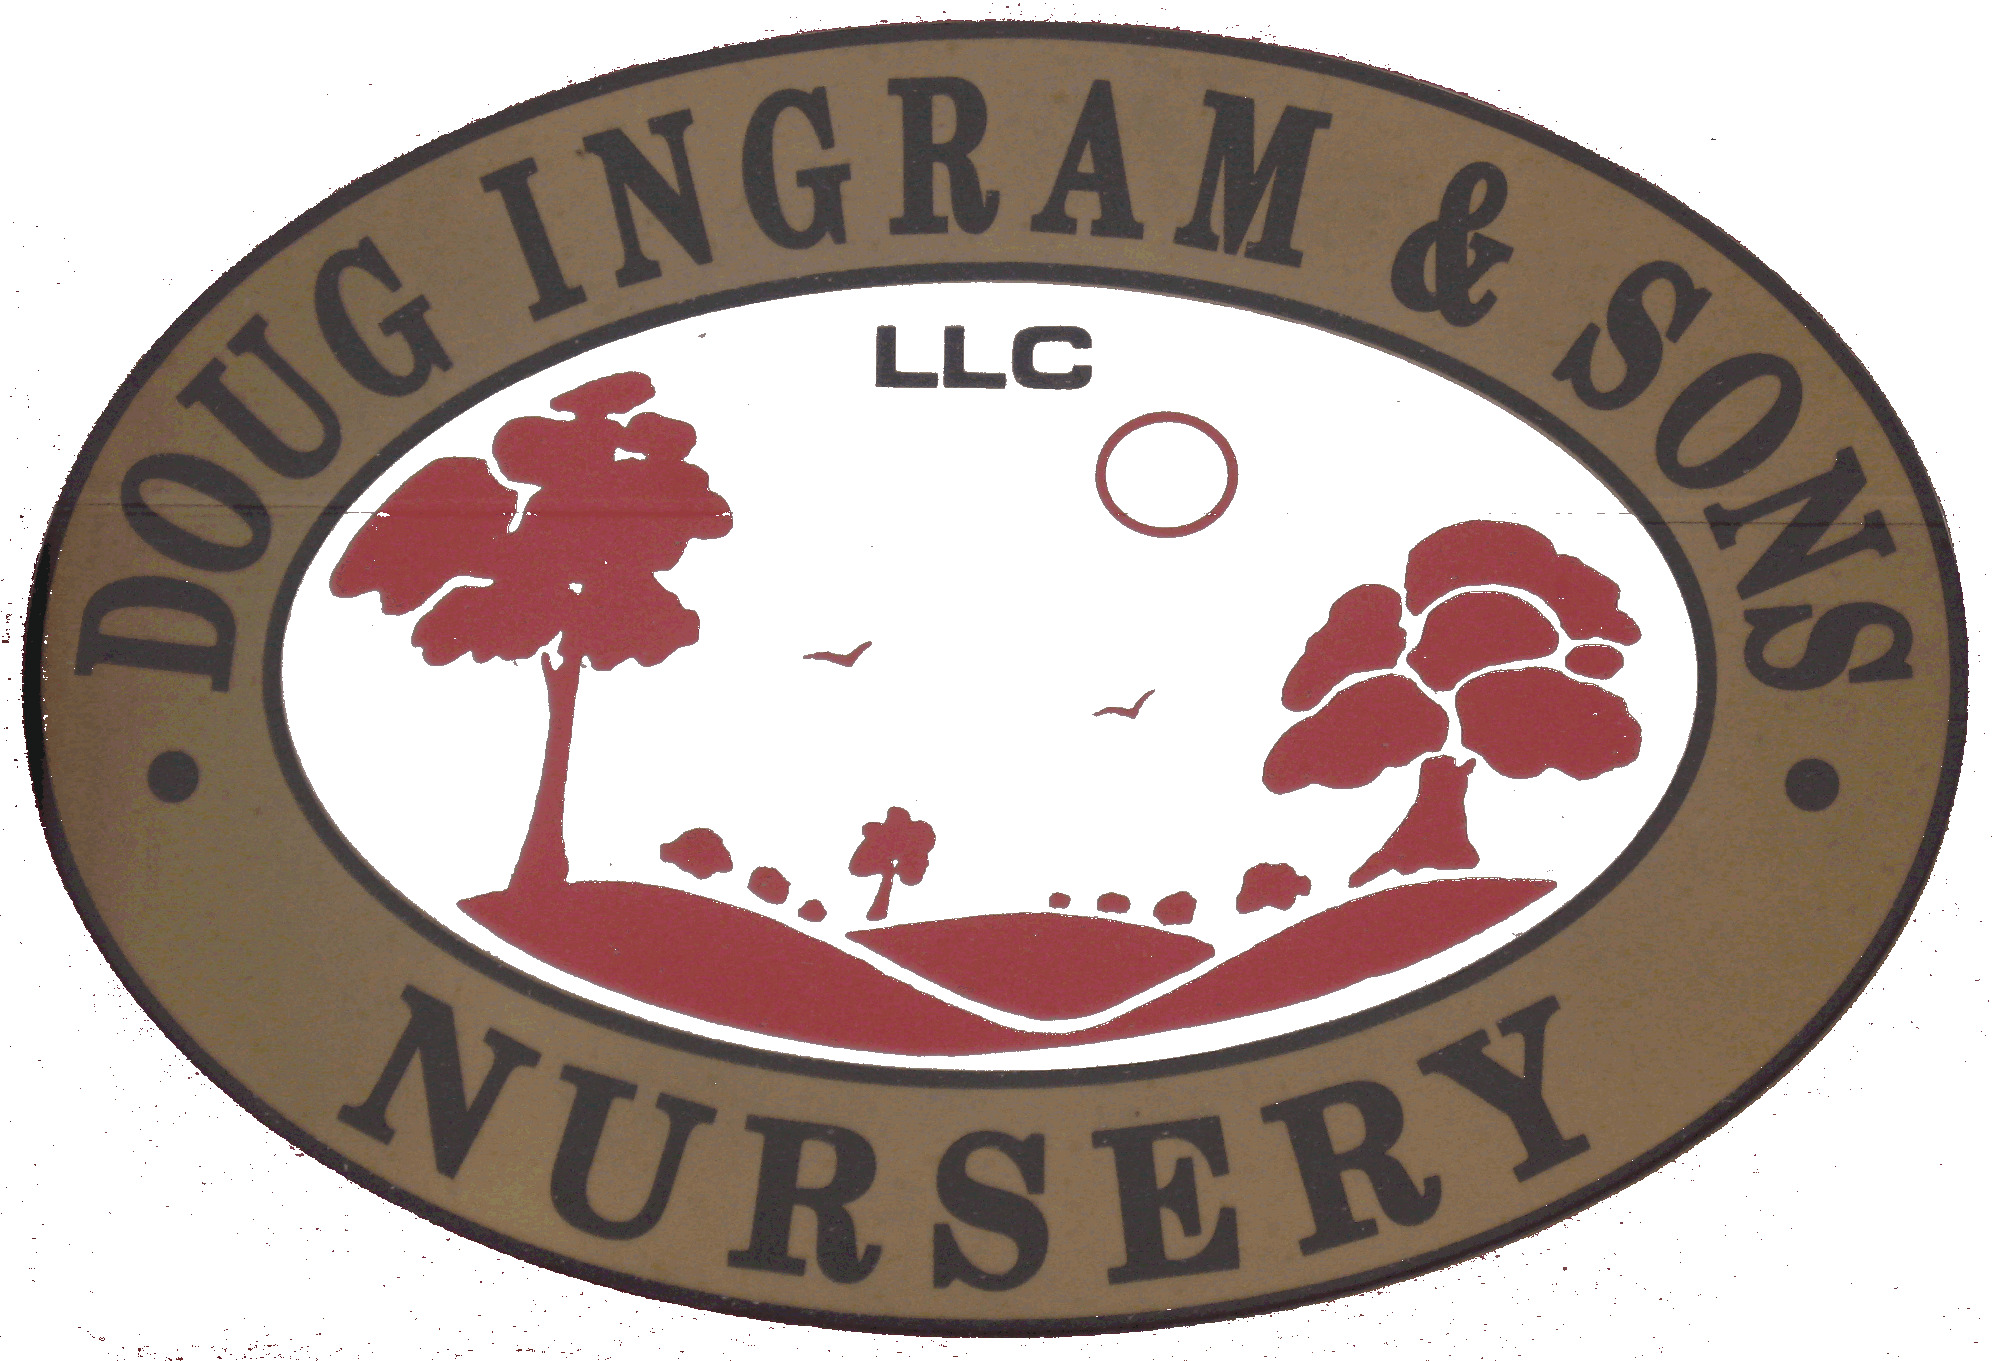 Doug Ingram Wholesale Nursery -